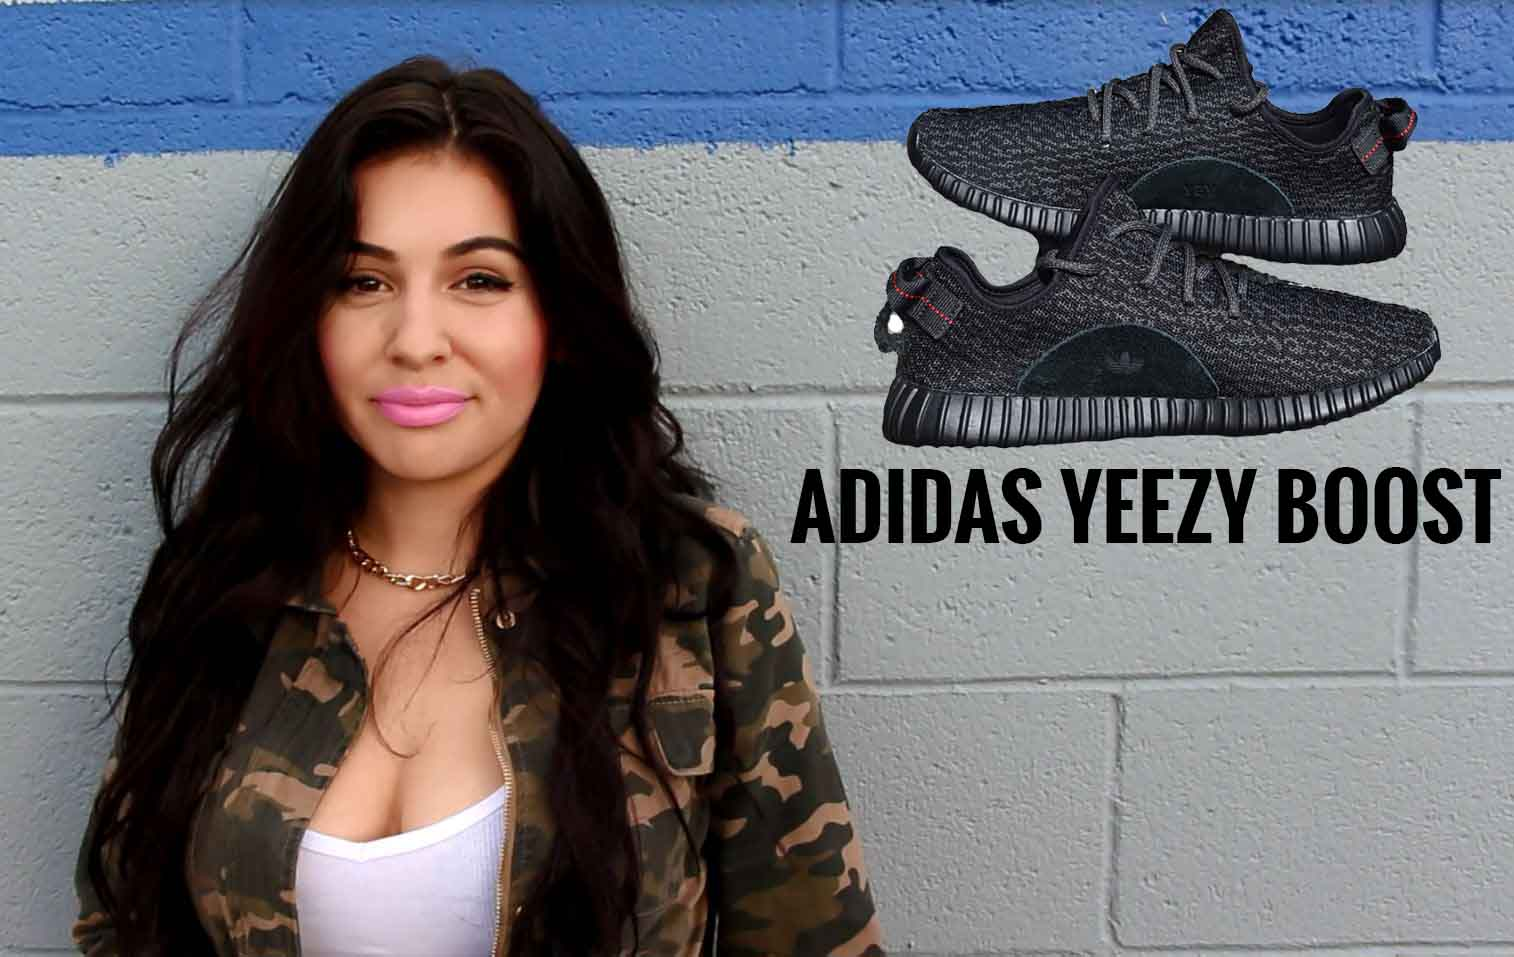 53149f6dd Female Sneakerhead Gives Thoughts on Adidas Yeezy Boost – aGOODoutfit